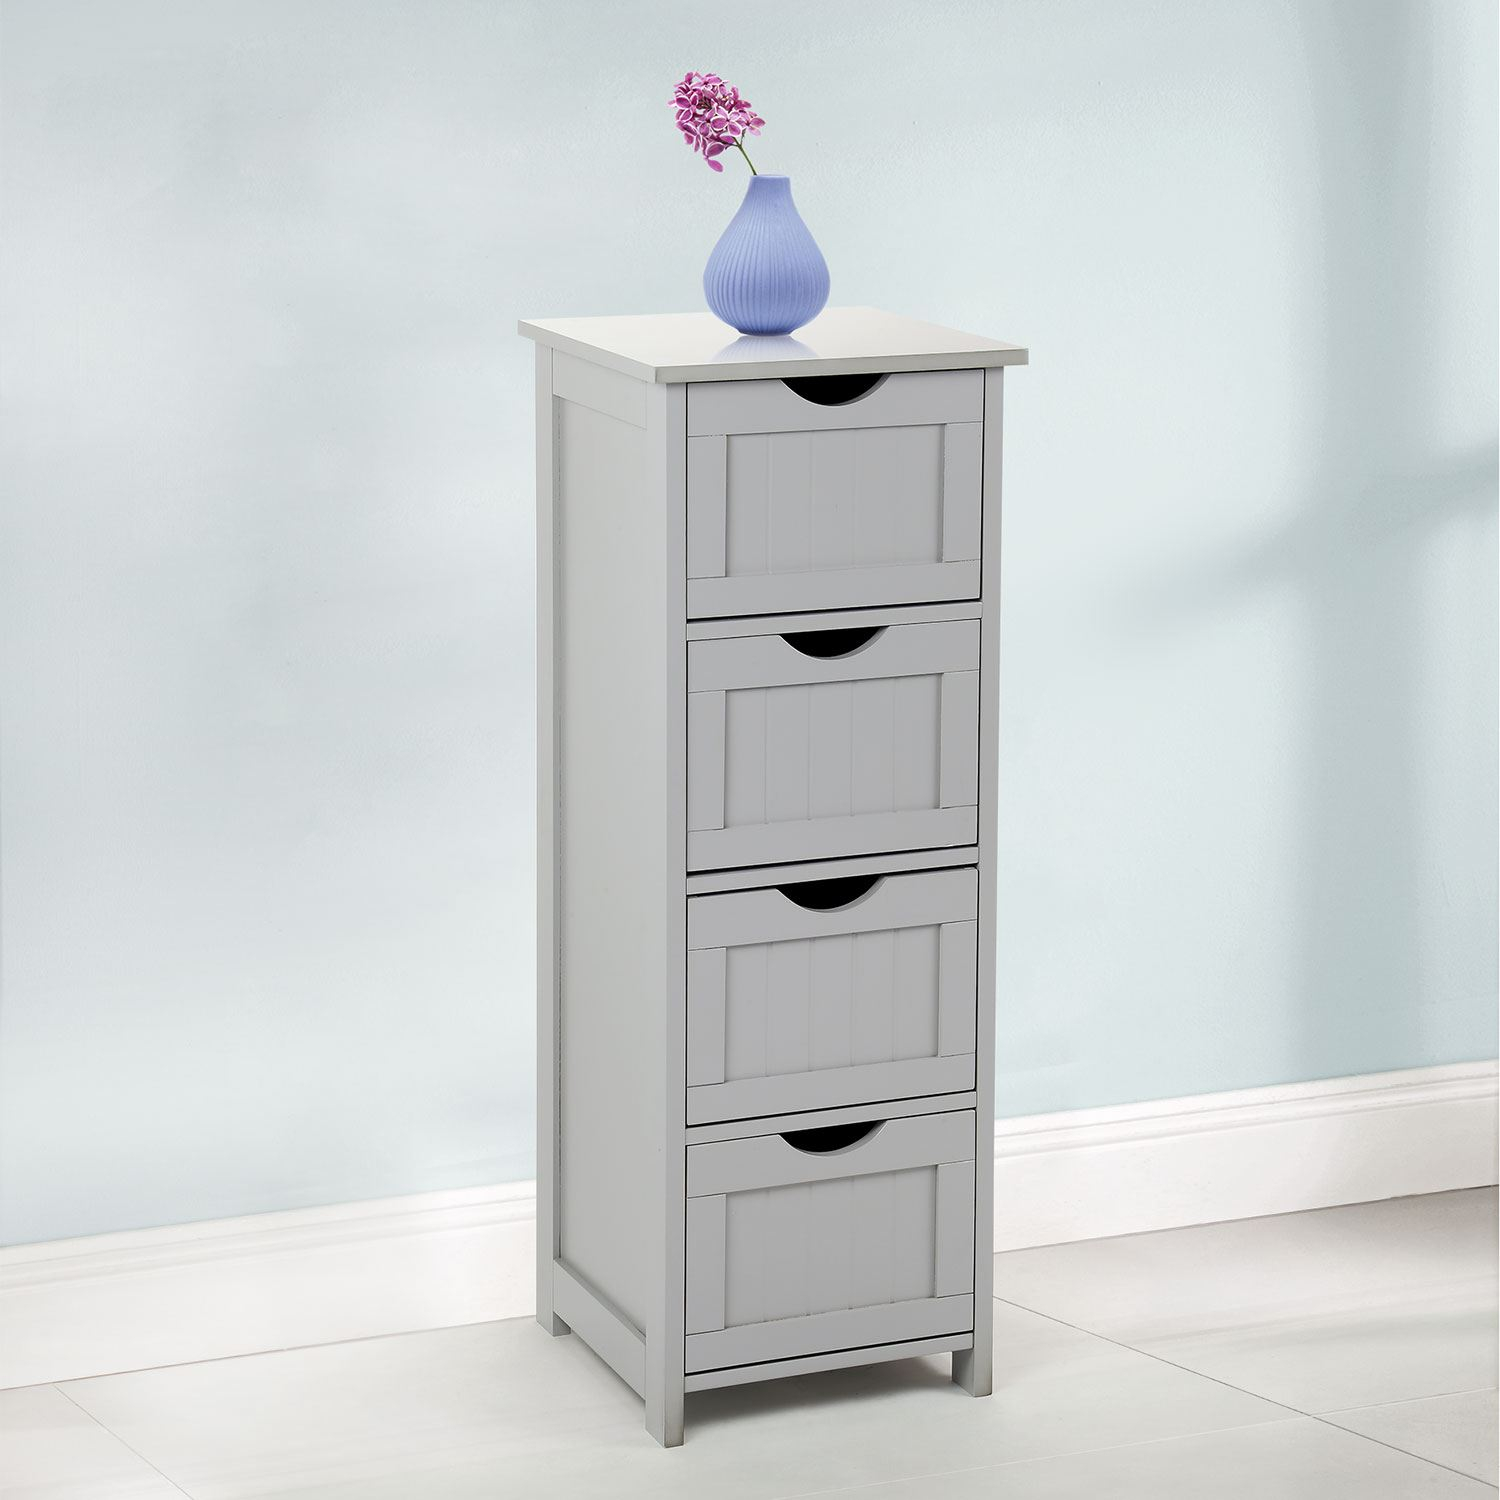 Details About 4 Drawer Slim Chest Tall Bathroom Storage Cabinet Bedroom Hallway Grey throughout sizing 1500 X 1500